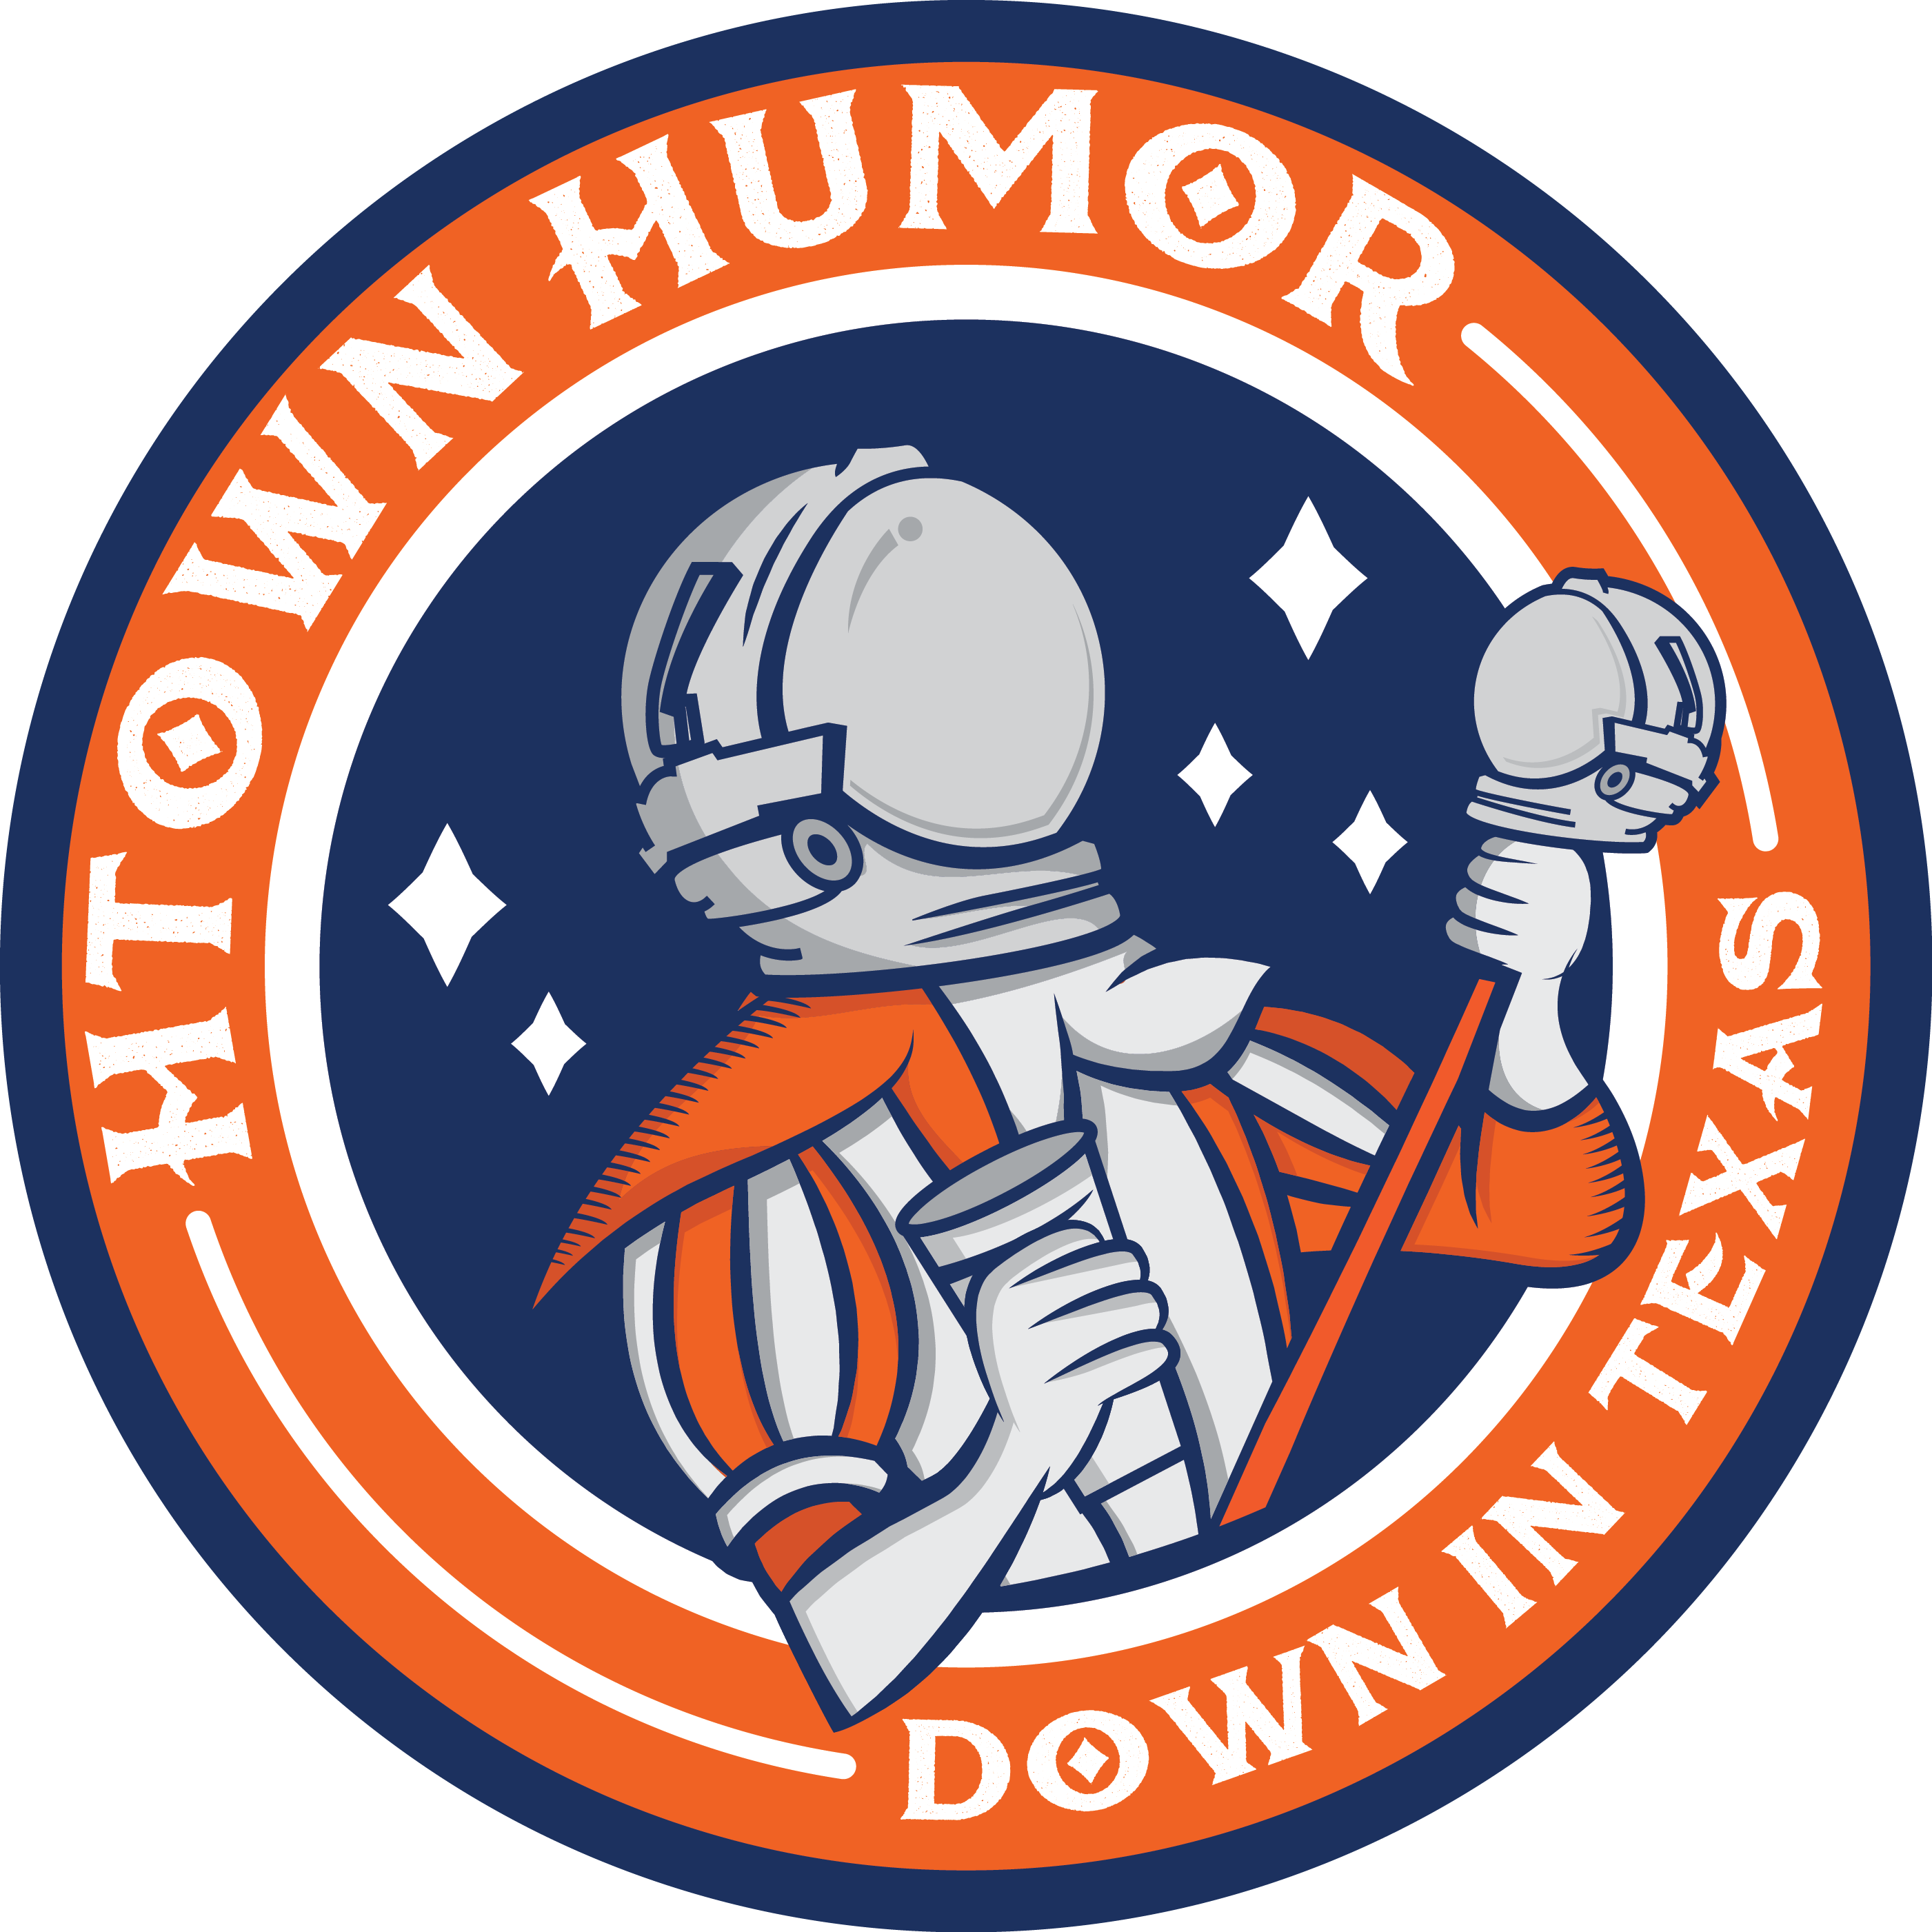 I need an astronaut in a Joker Card logo design or SOMETHING CREATIVE with an ASTRONAUT